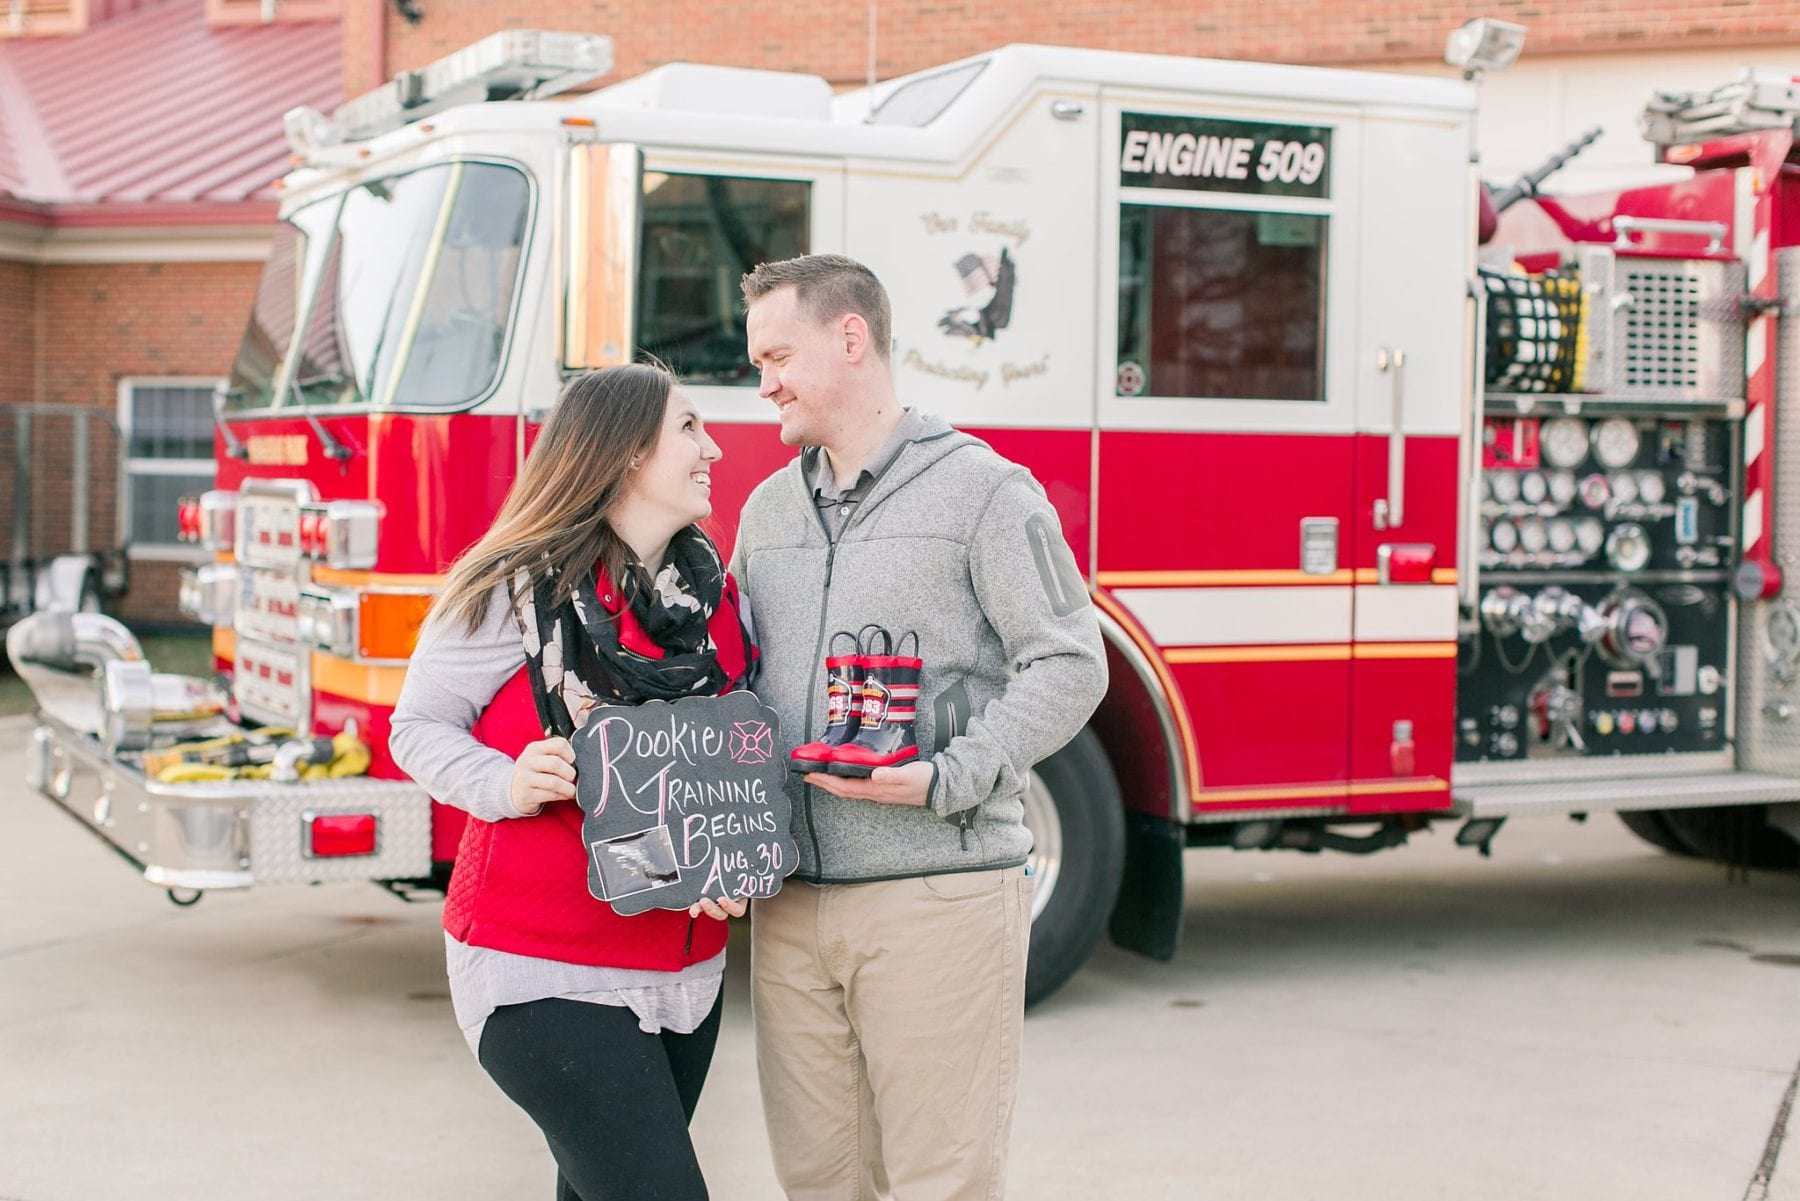 Firefighter Baby Announcement Virginia Photographer Megan Kelsey Photography Jeromy & Becky-80.jpg